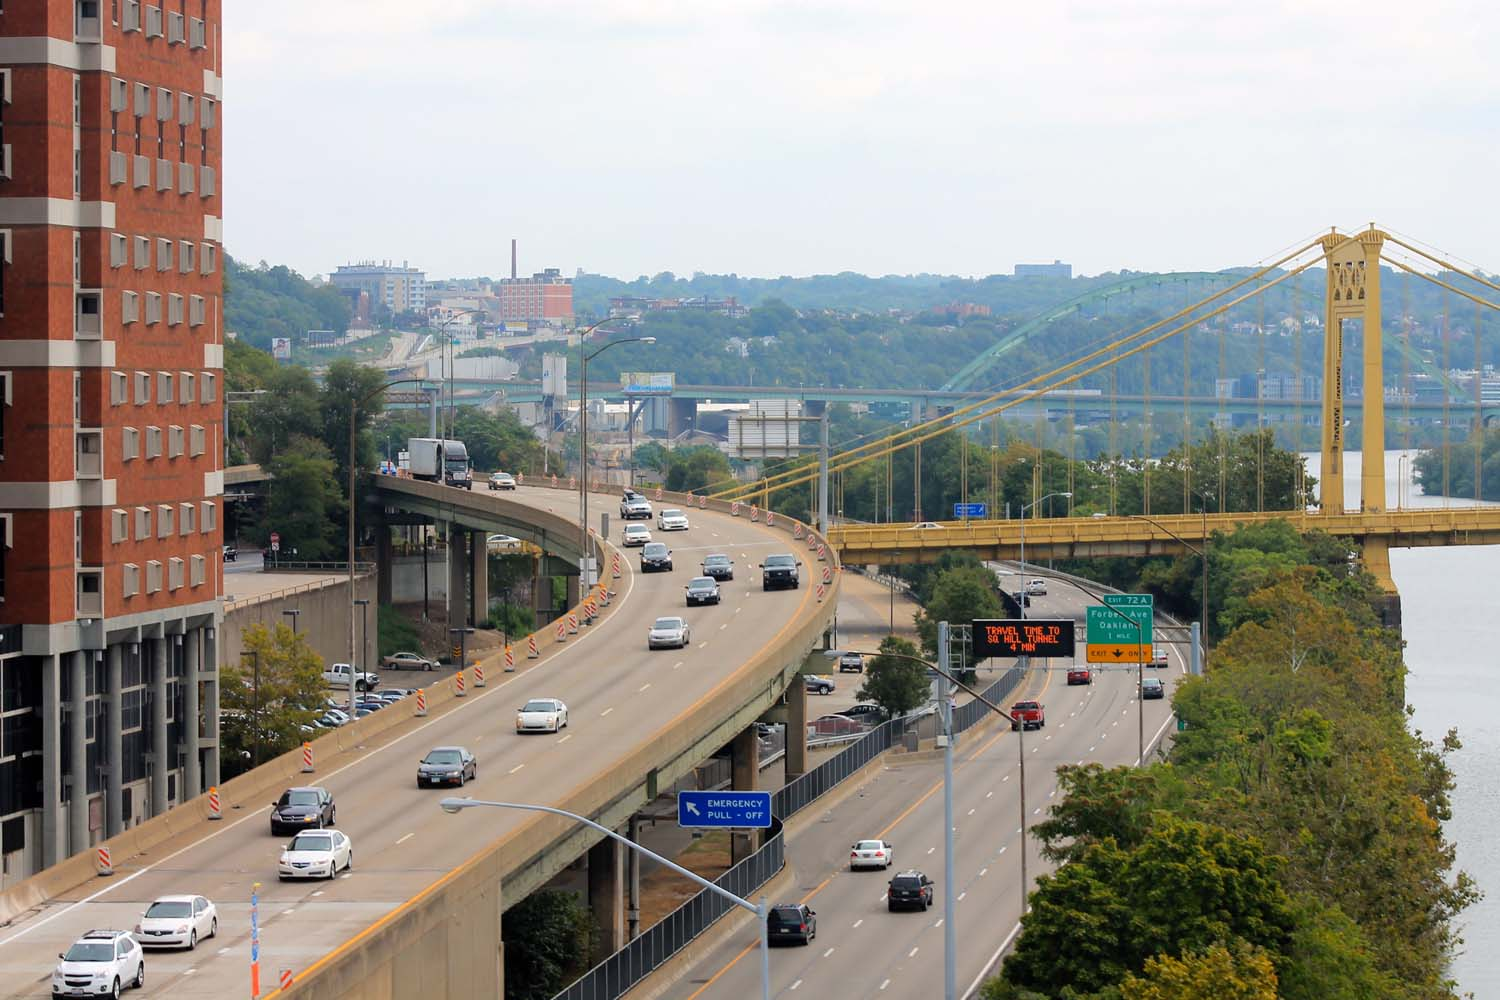 The American Society of Civil Engineers awarded Pittsburgh with a C- infrastructure quality rating in November 2018.